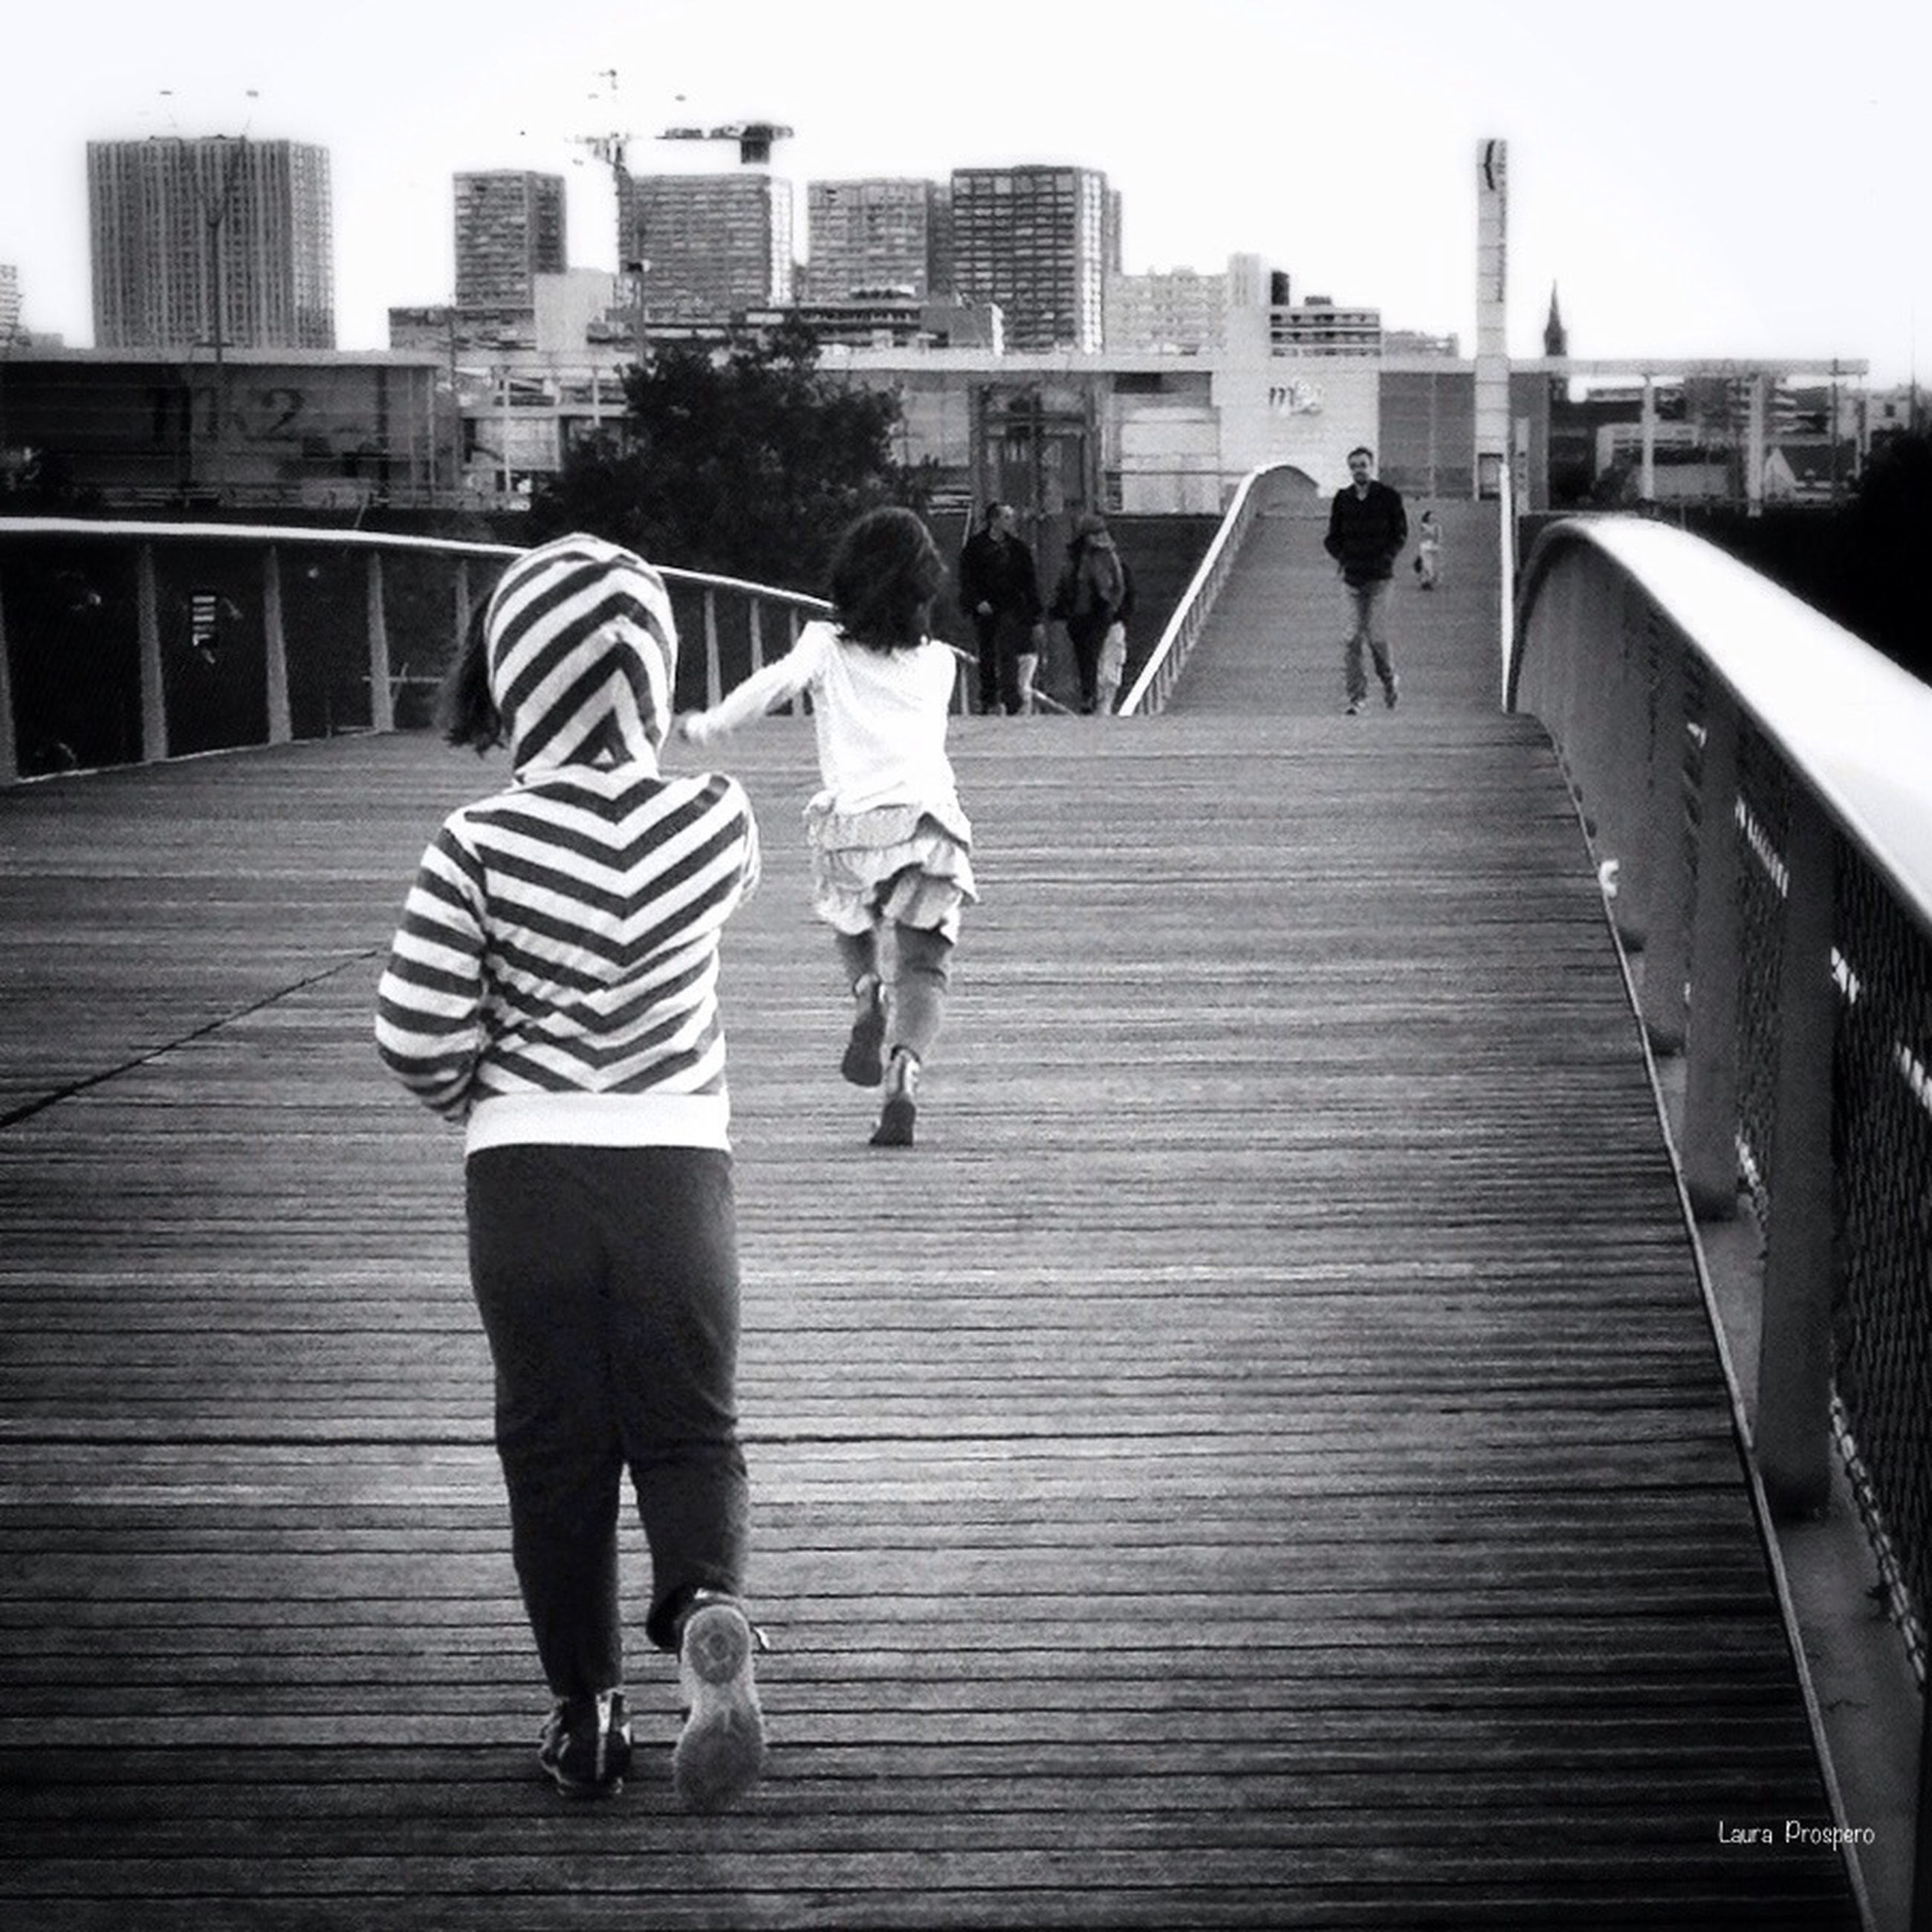 full length, lifestyles, rear view, walking, togetherness, leisure activity, men, built structure, building exterior, architecture, casual clothing, boys, city, bonding, childhood, city life, railing